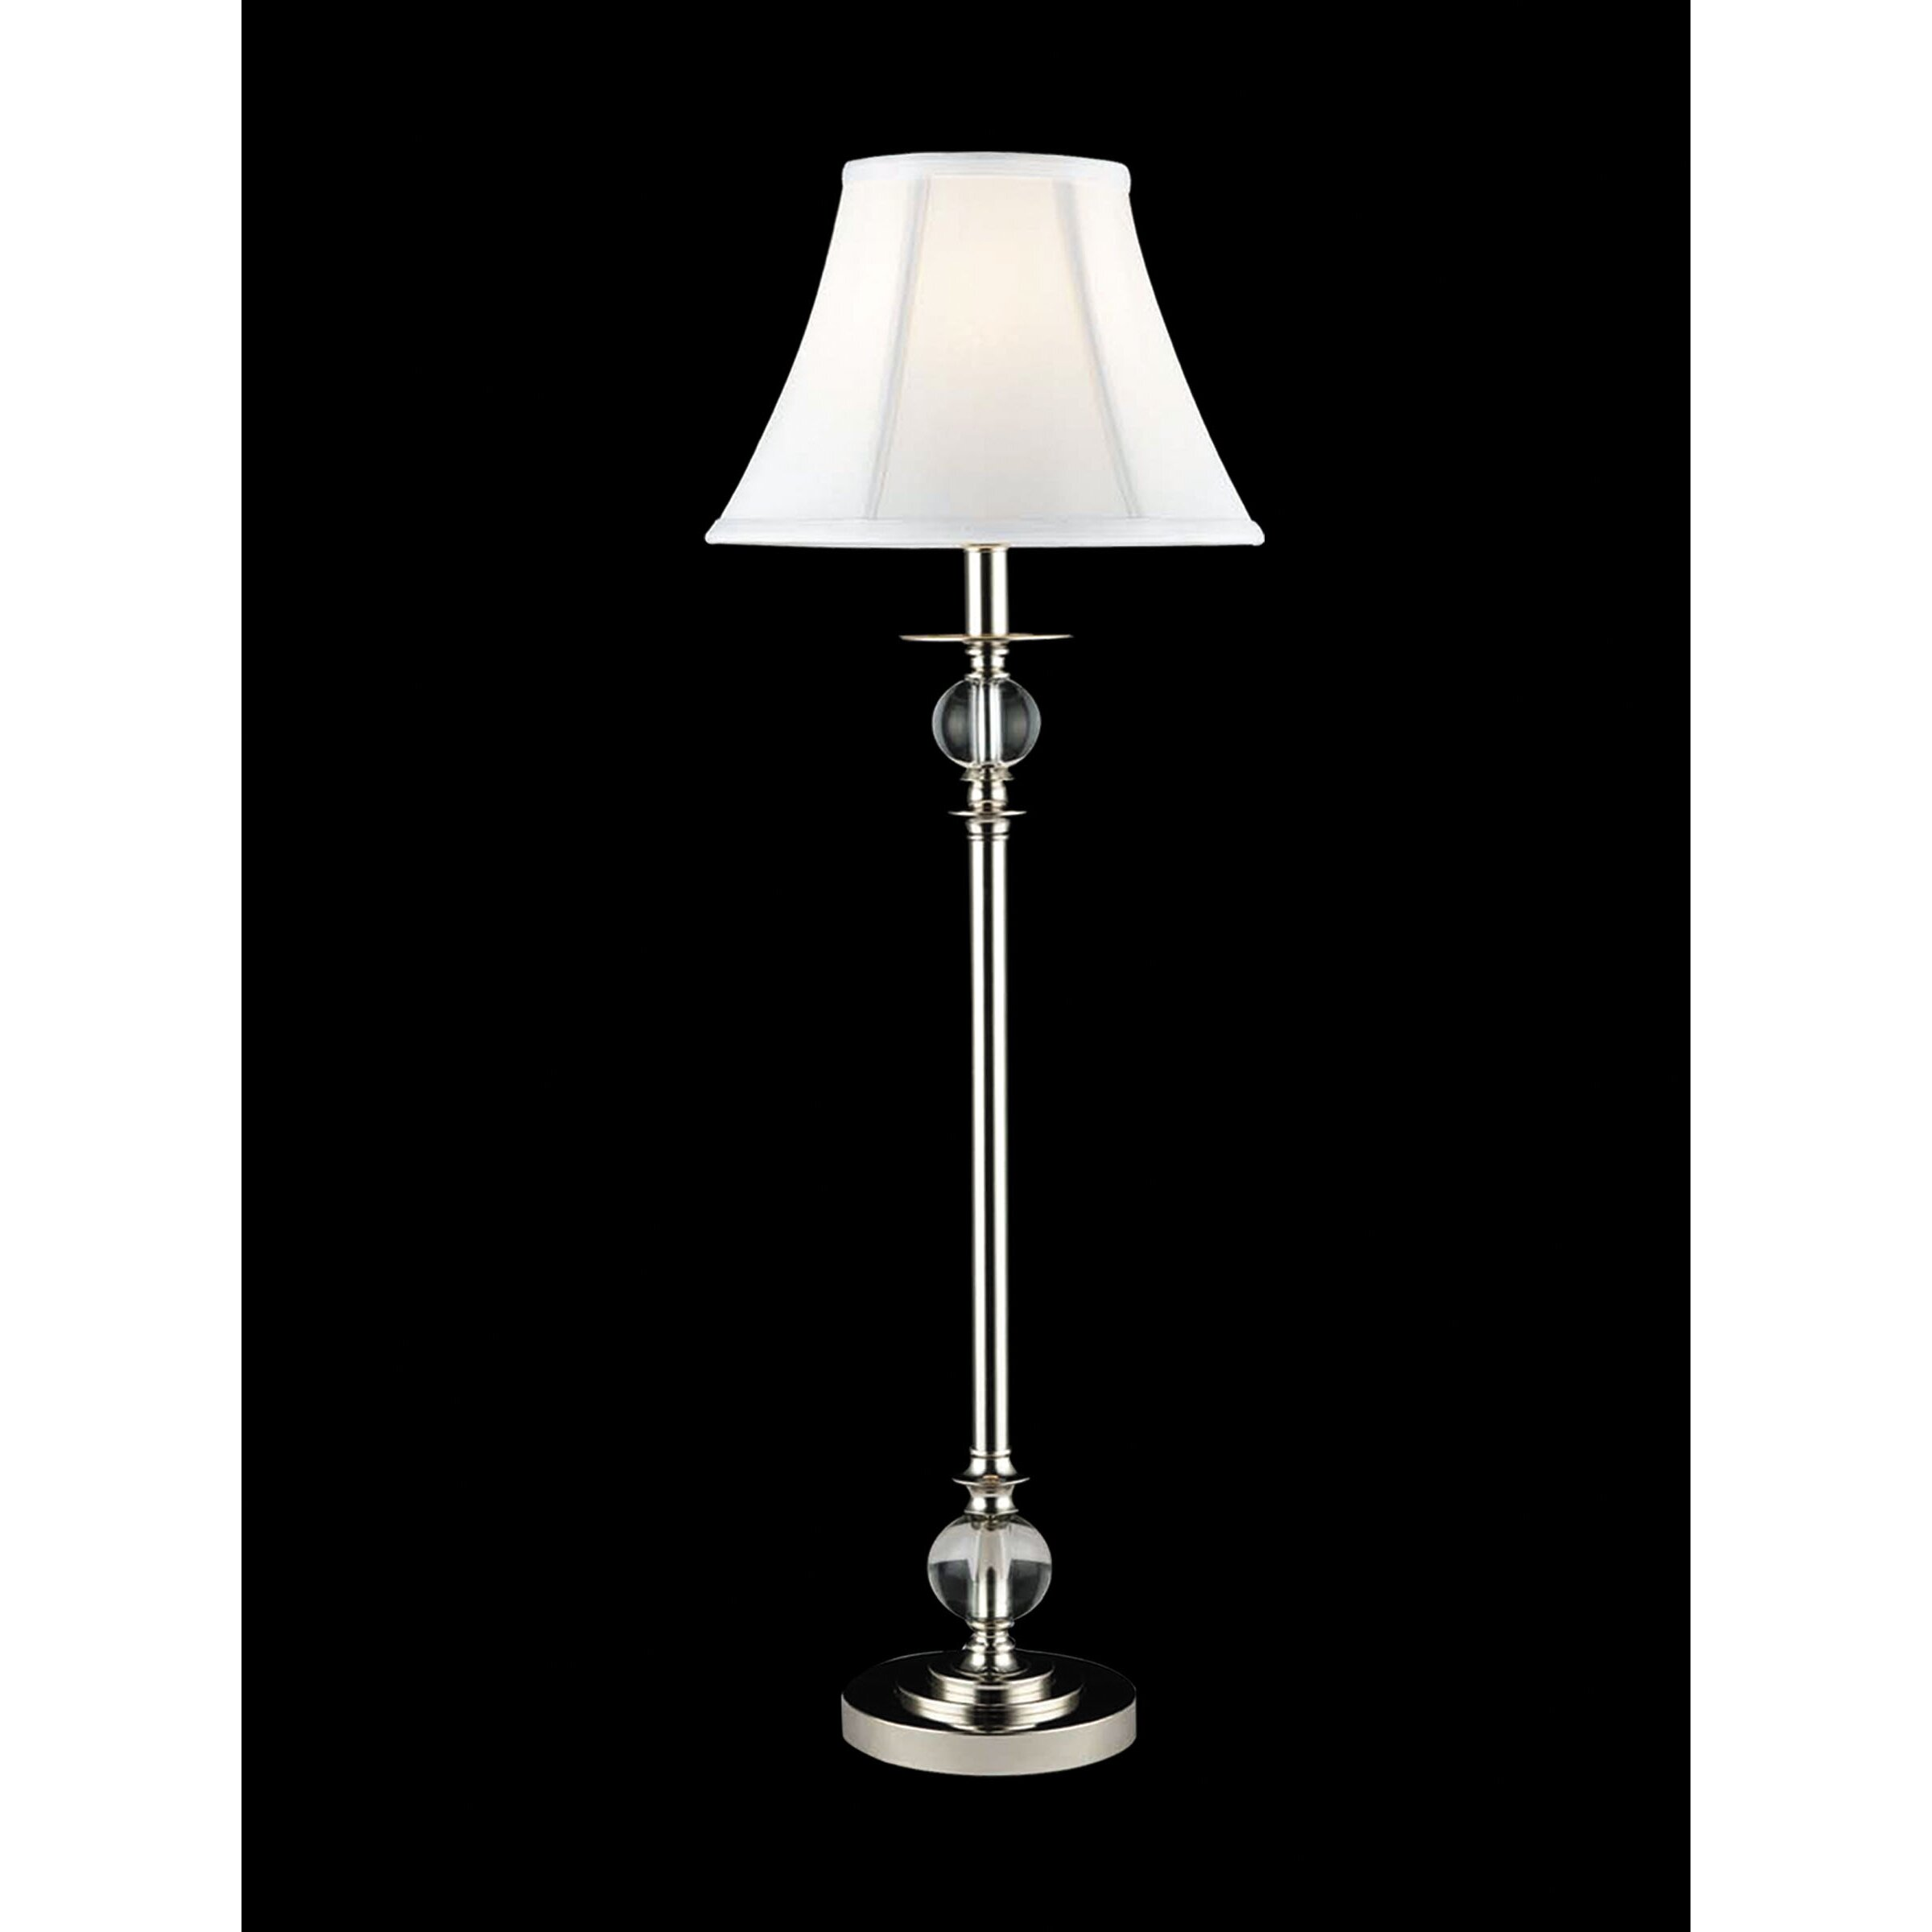 lighting lamps chrome table lamps dale tiffany sku dt2779. Black Bedroom Furniture Sets. Home Design Ideas